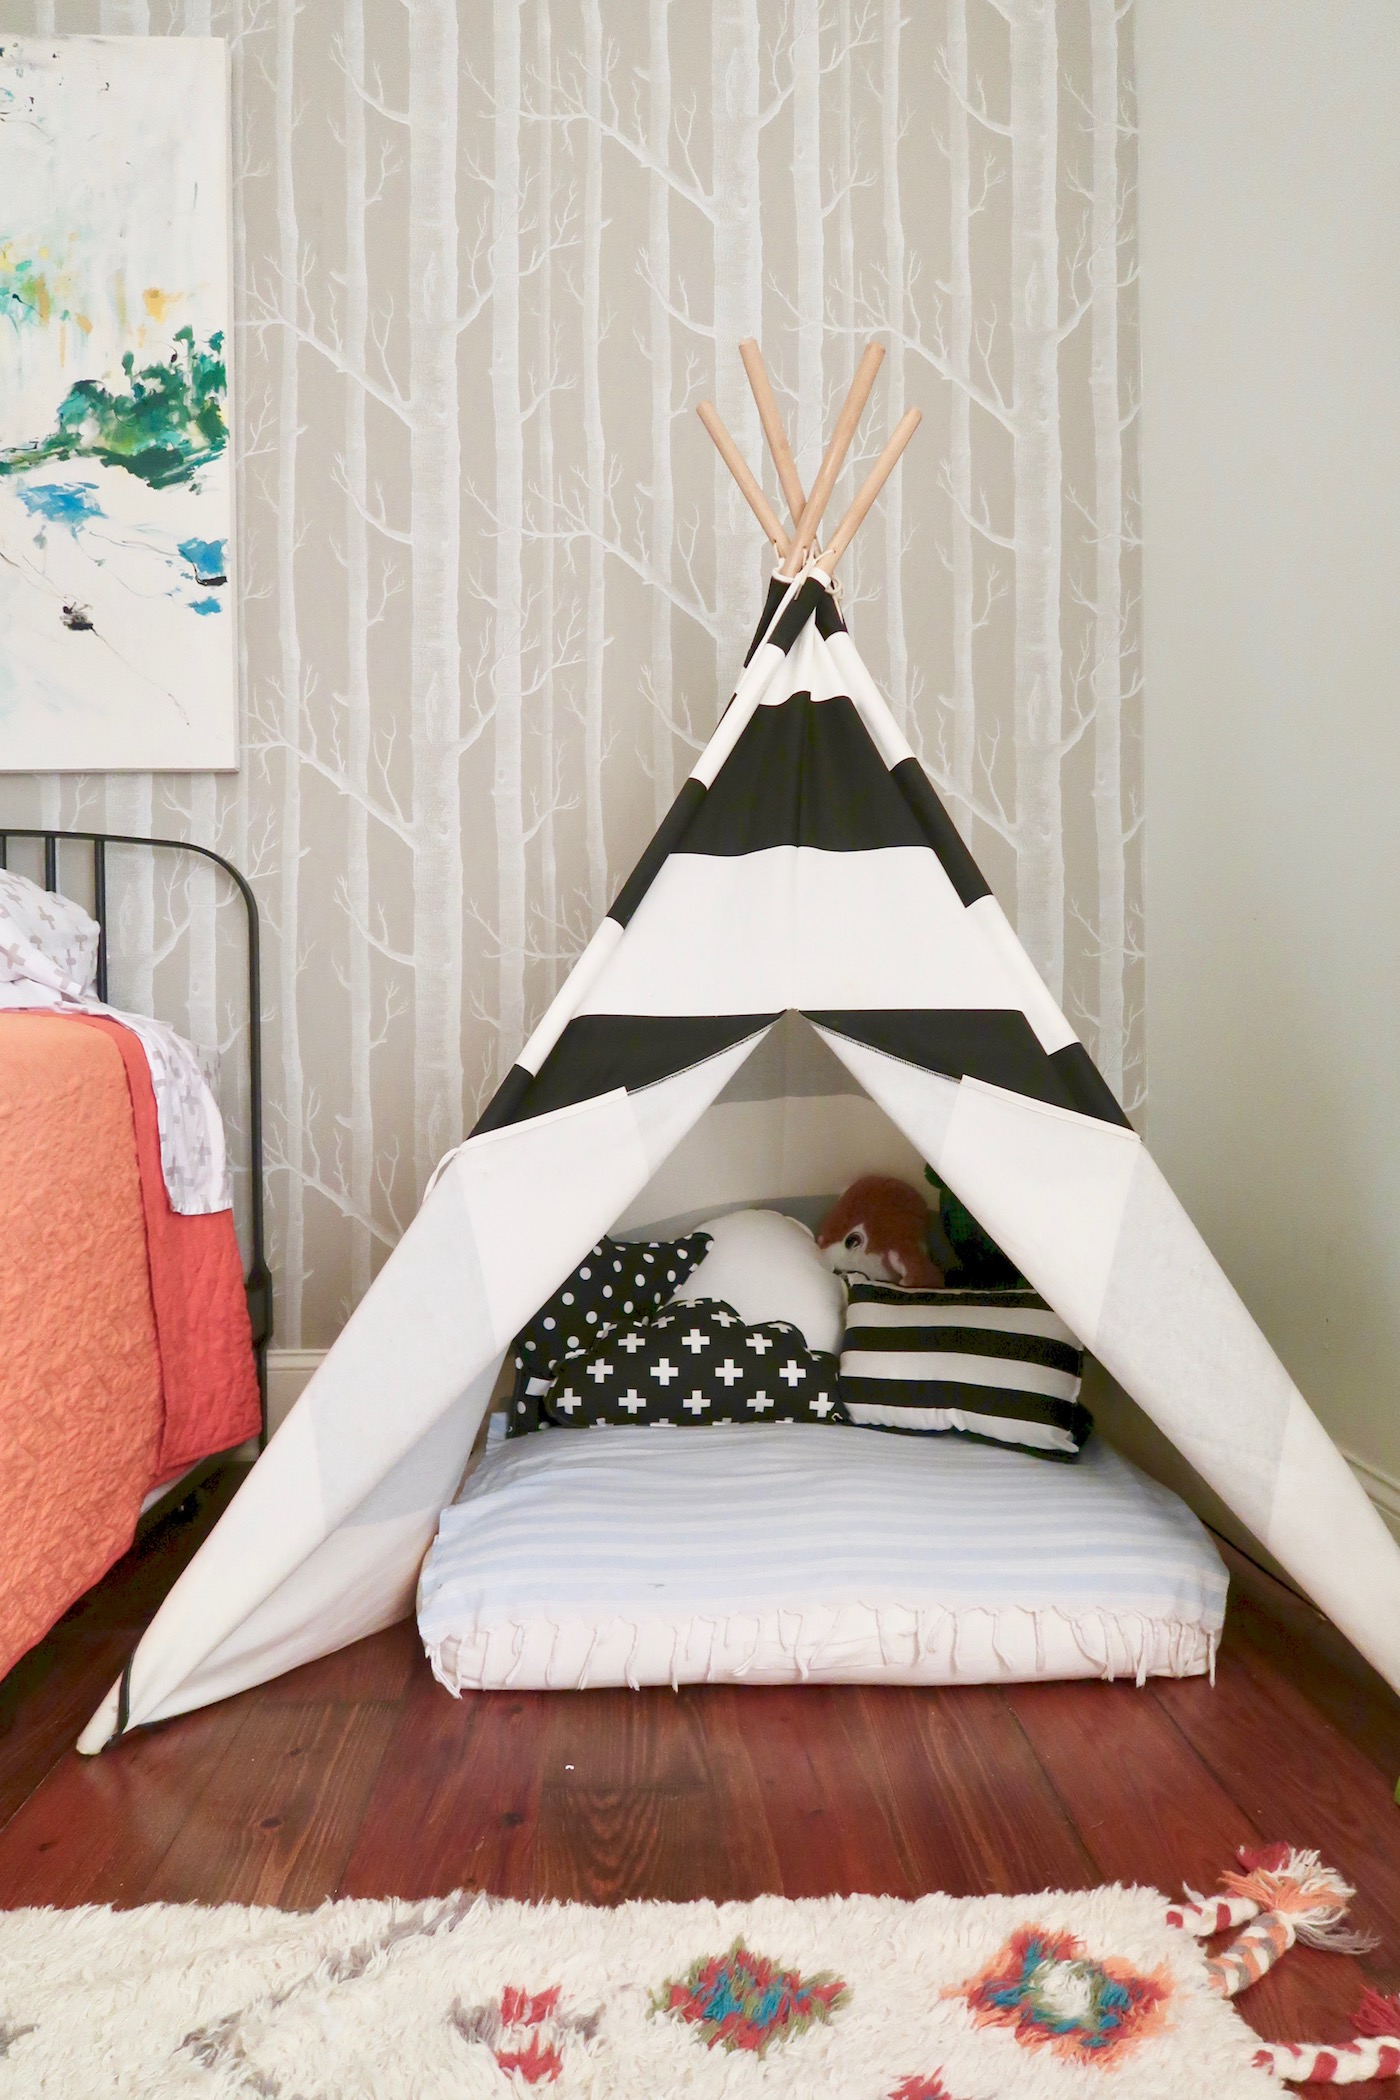 Teepee Joy pillows for little boy's room // www.thehiveblog.com